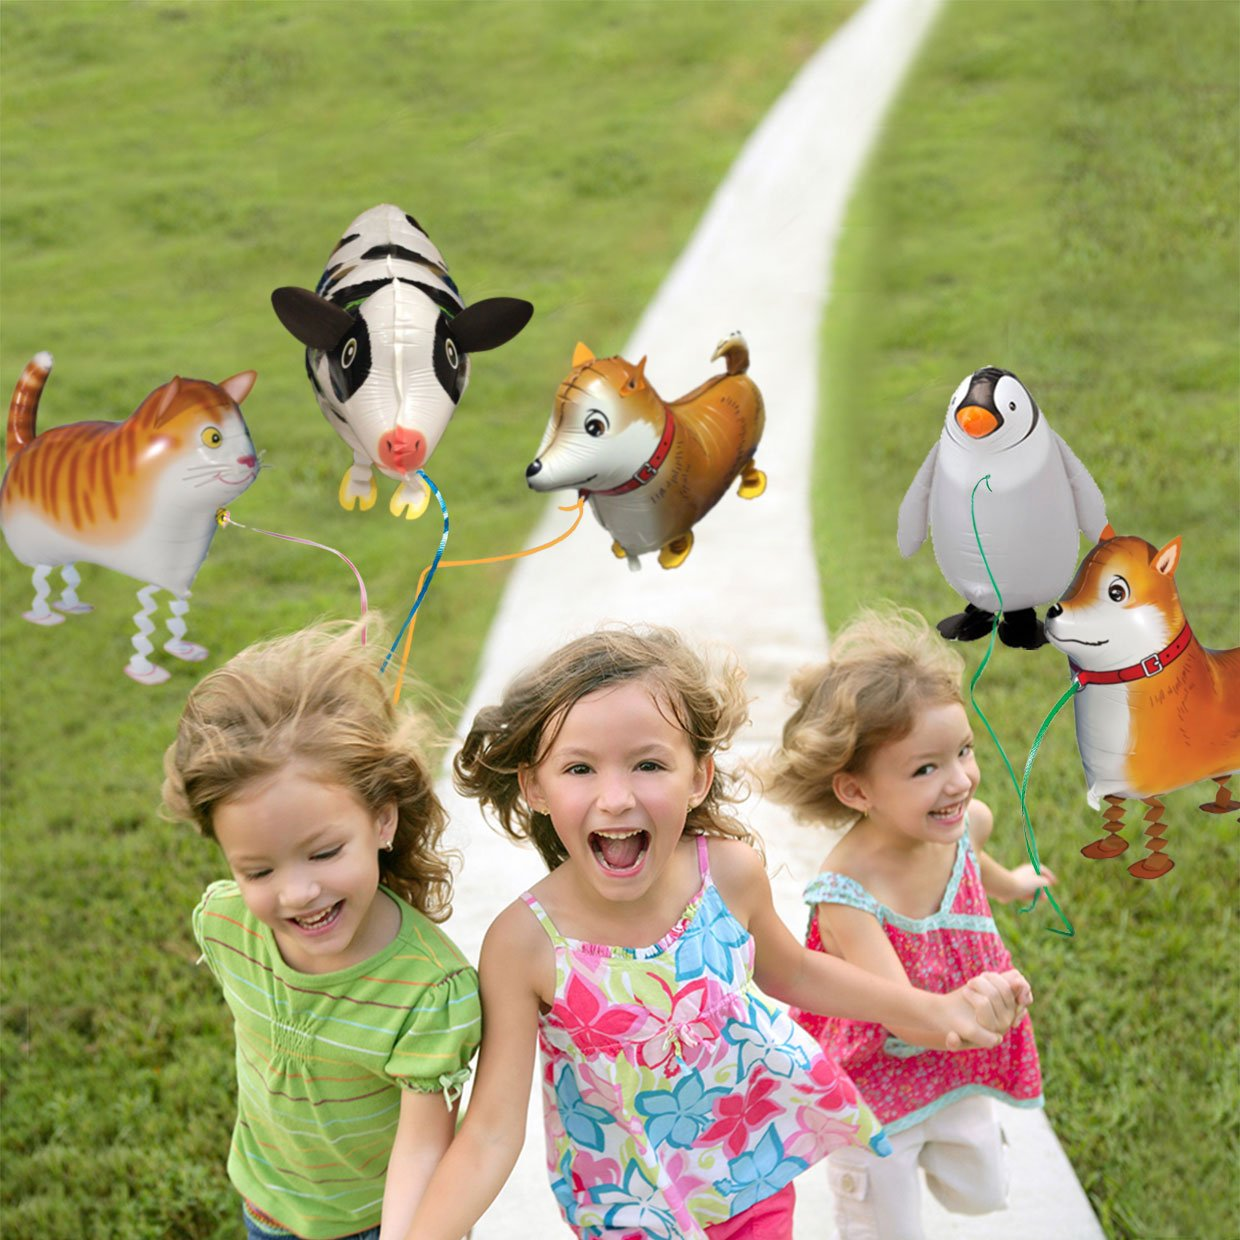 5pcs Walking Pet Animal Balloons Kids toys Party Favors Gifts for Girls Air Walker group-F by Merveilleux (Image #4)